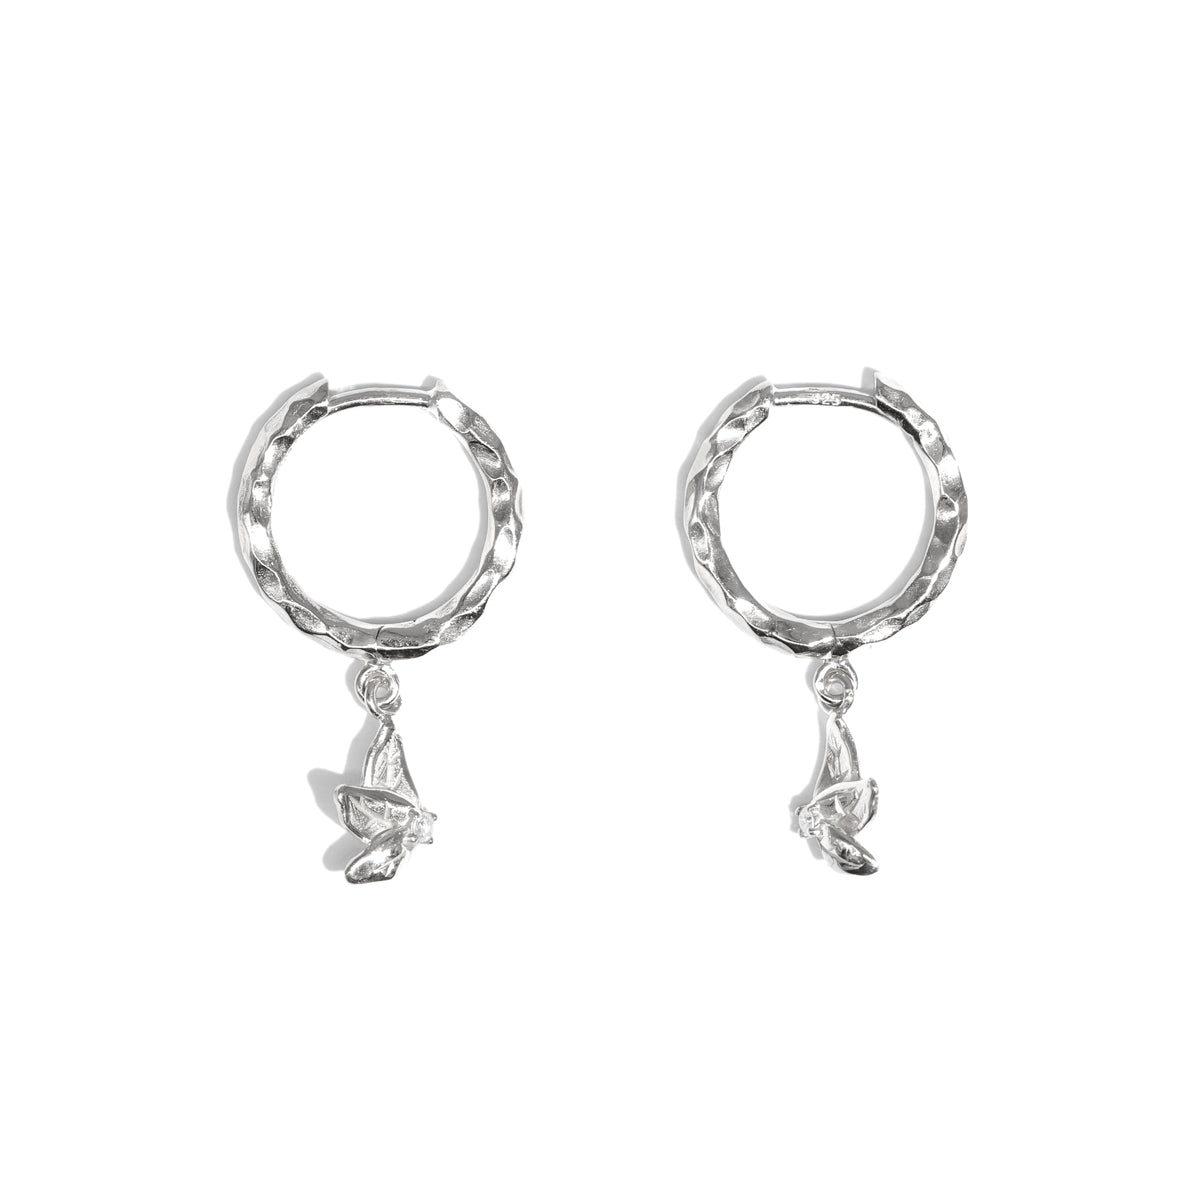 The Silver Diamond Petal Hoop Earrings